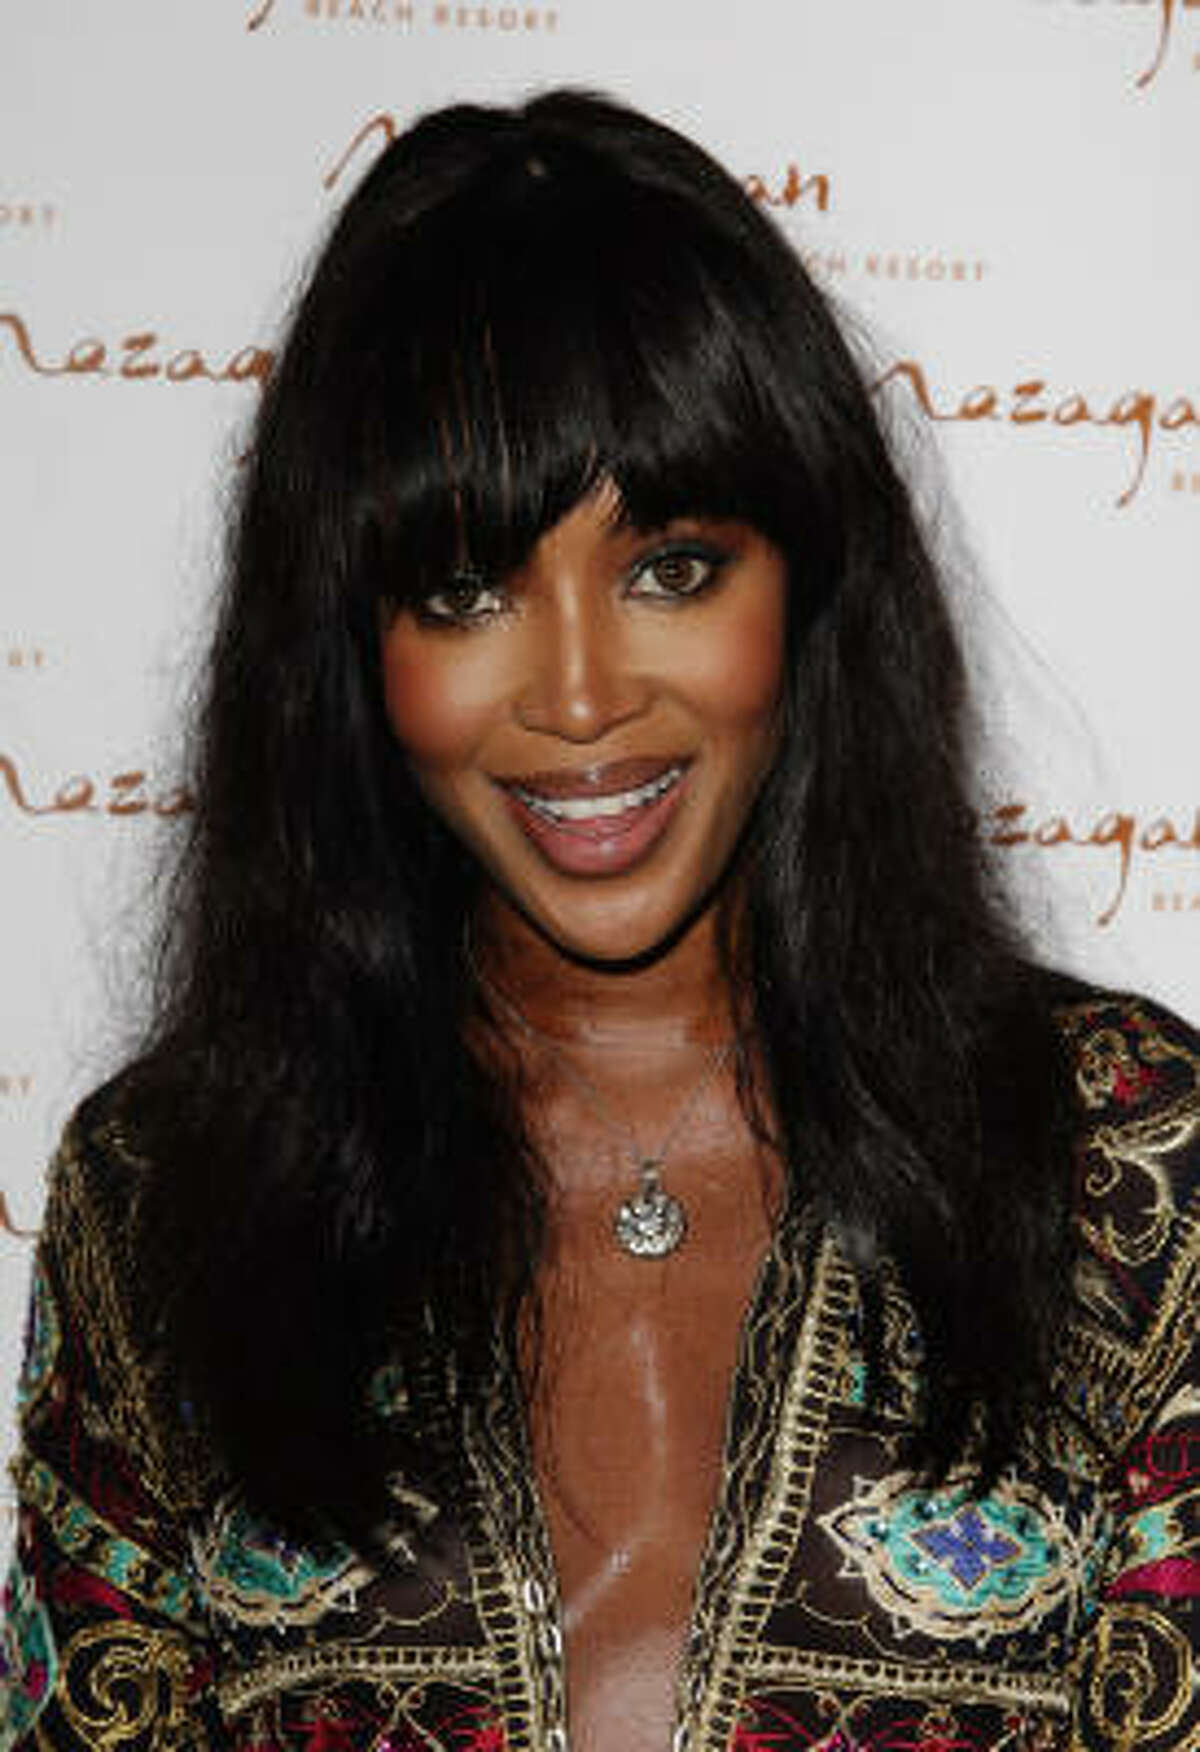 Naomi Campbell's cell phone fiasco. March 2006, when the maid couldn't find her jeans, she becaome verbally abusive and threw a cell phone at her. She got anger management and community service.